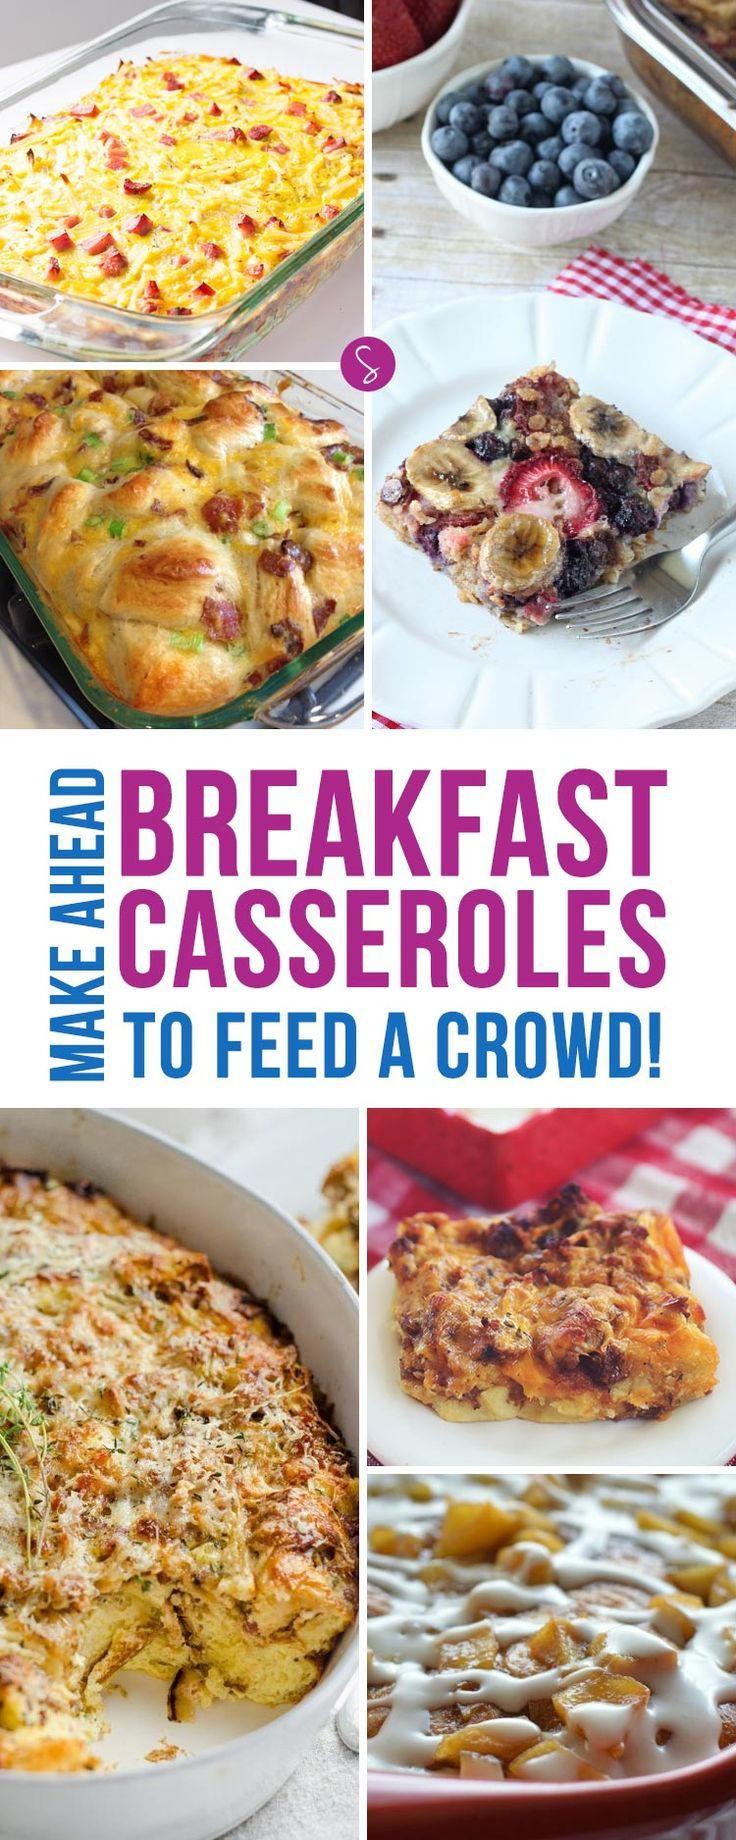 Keep your breakfast casserole piping hot!